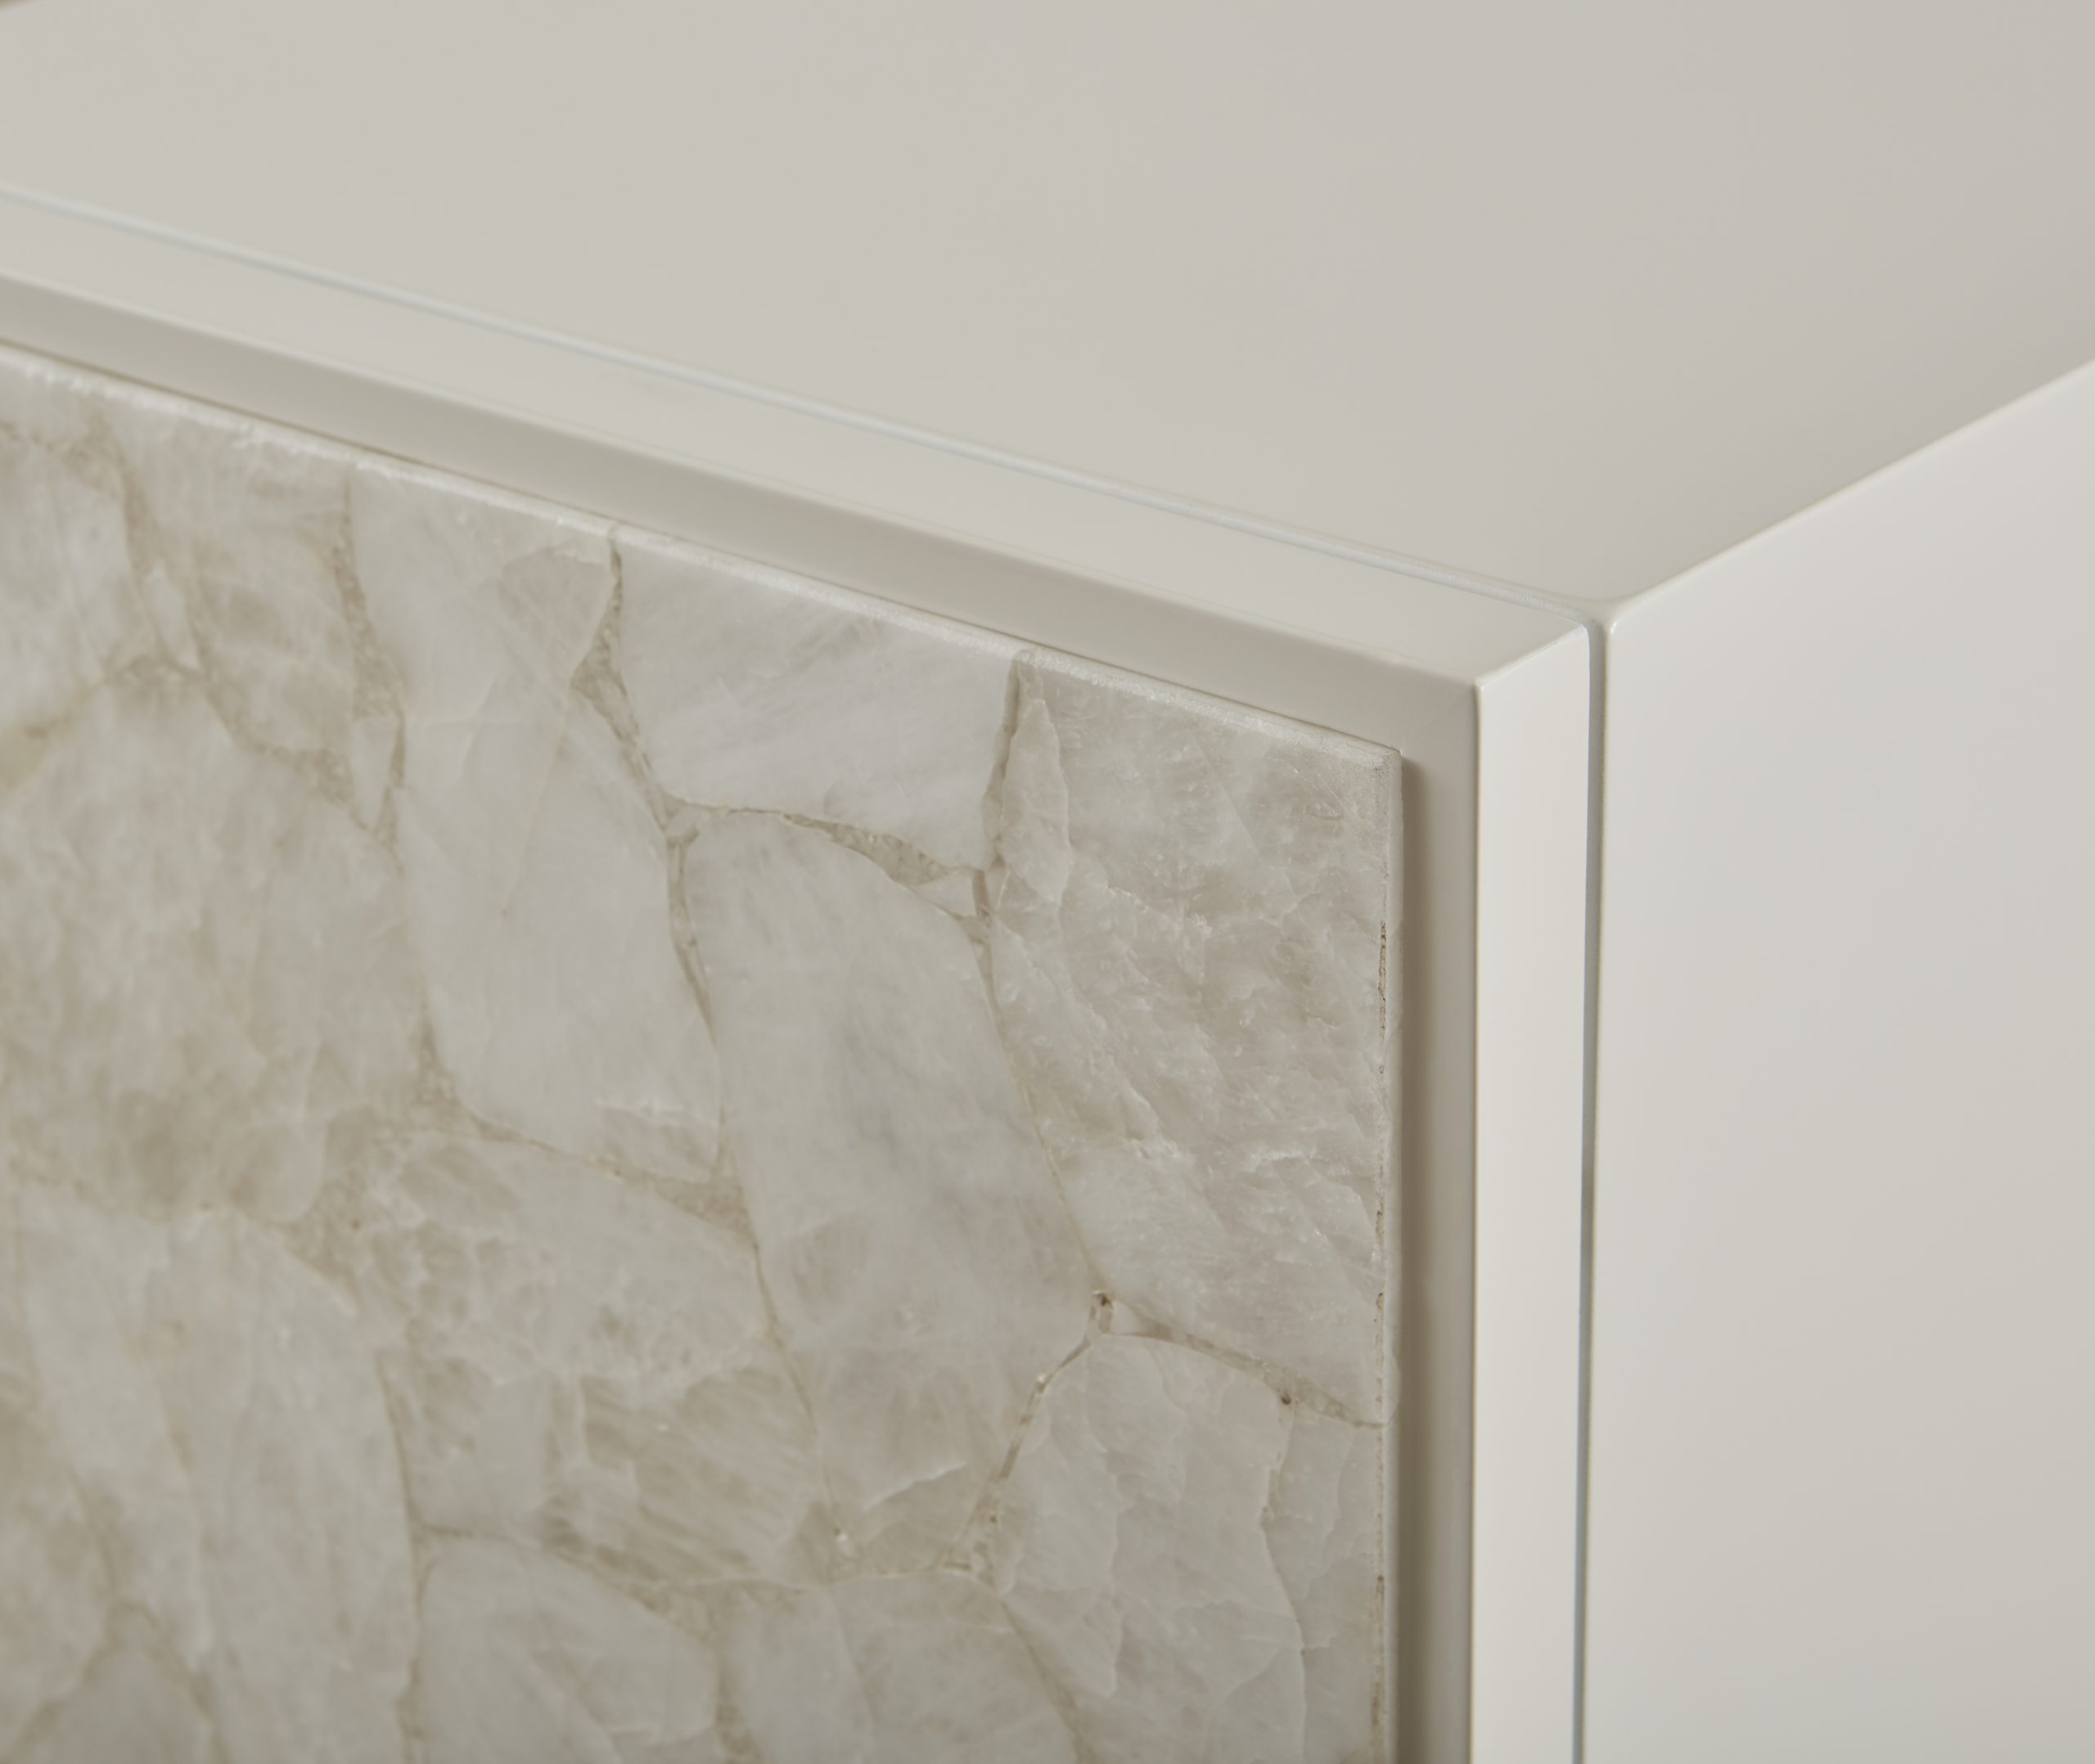 Baker_products_WNWN_kira_credenza_BAA3028_DETAIL-scaled-1